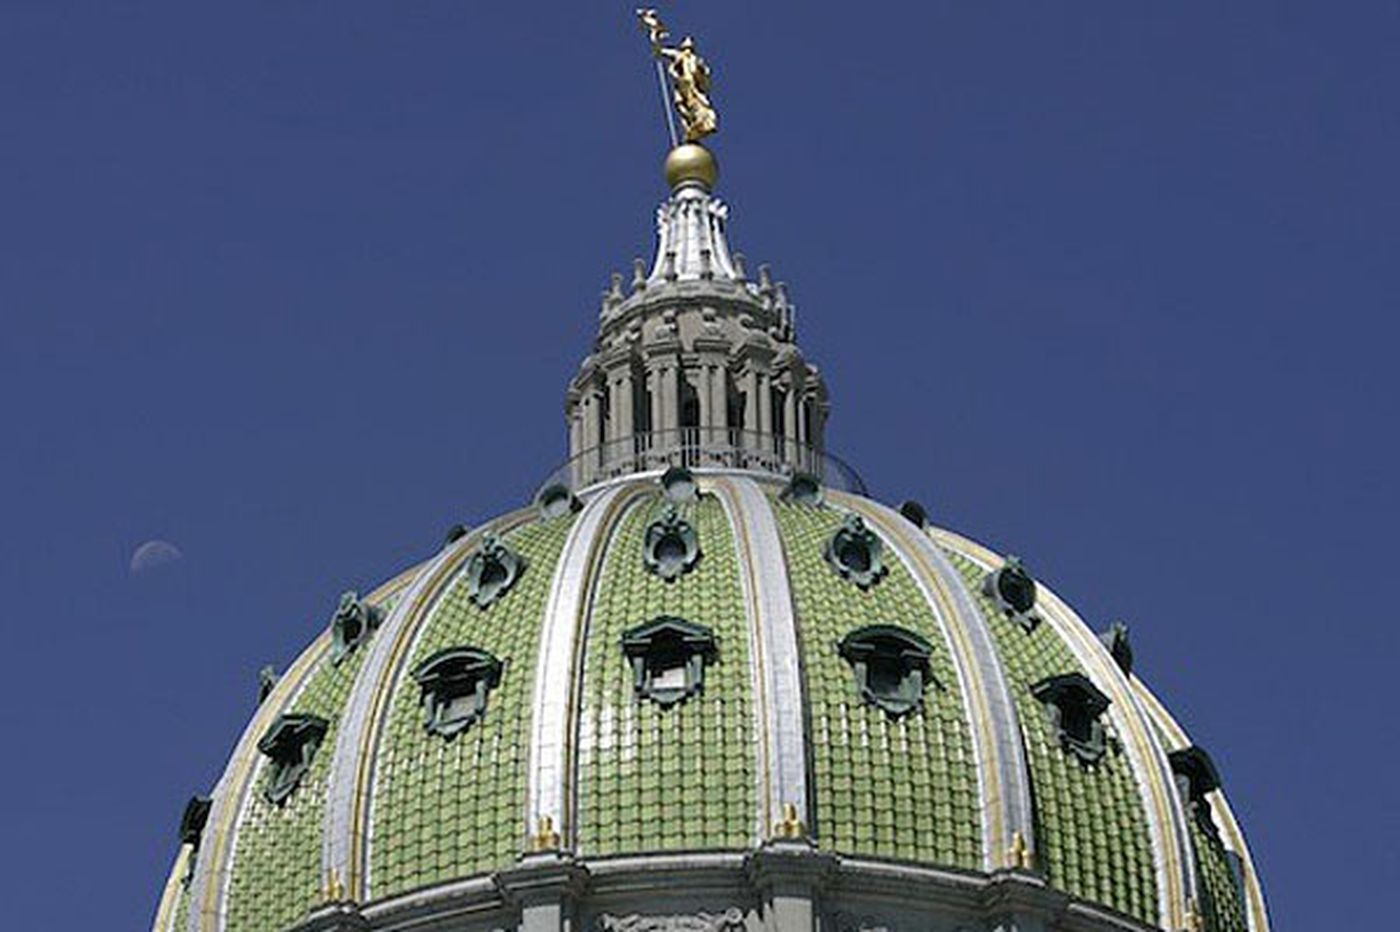 Pa. weighs proposals to force drug addicts into treatment